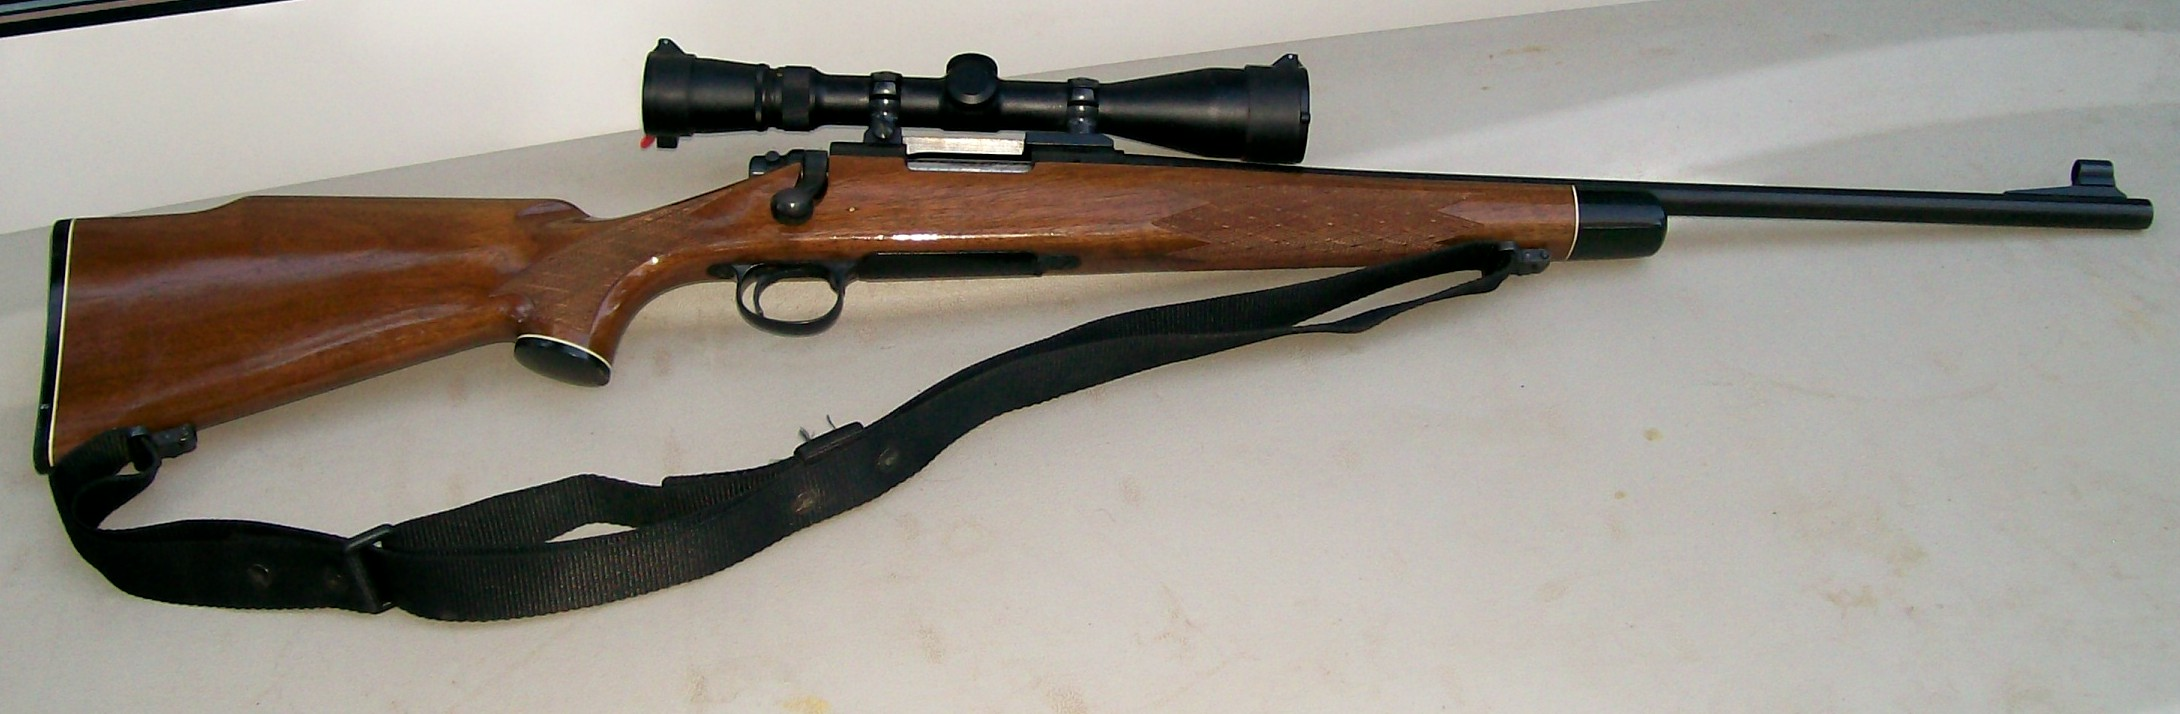 This just in! New Deer rifle for me.-remington-243.jpg